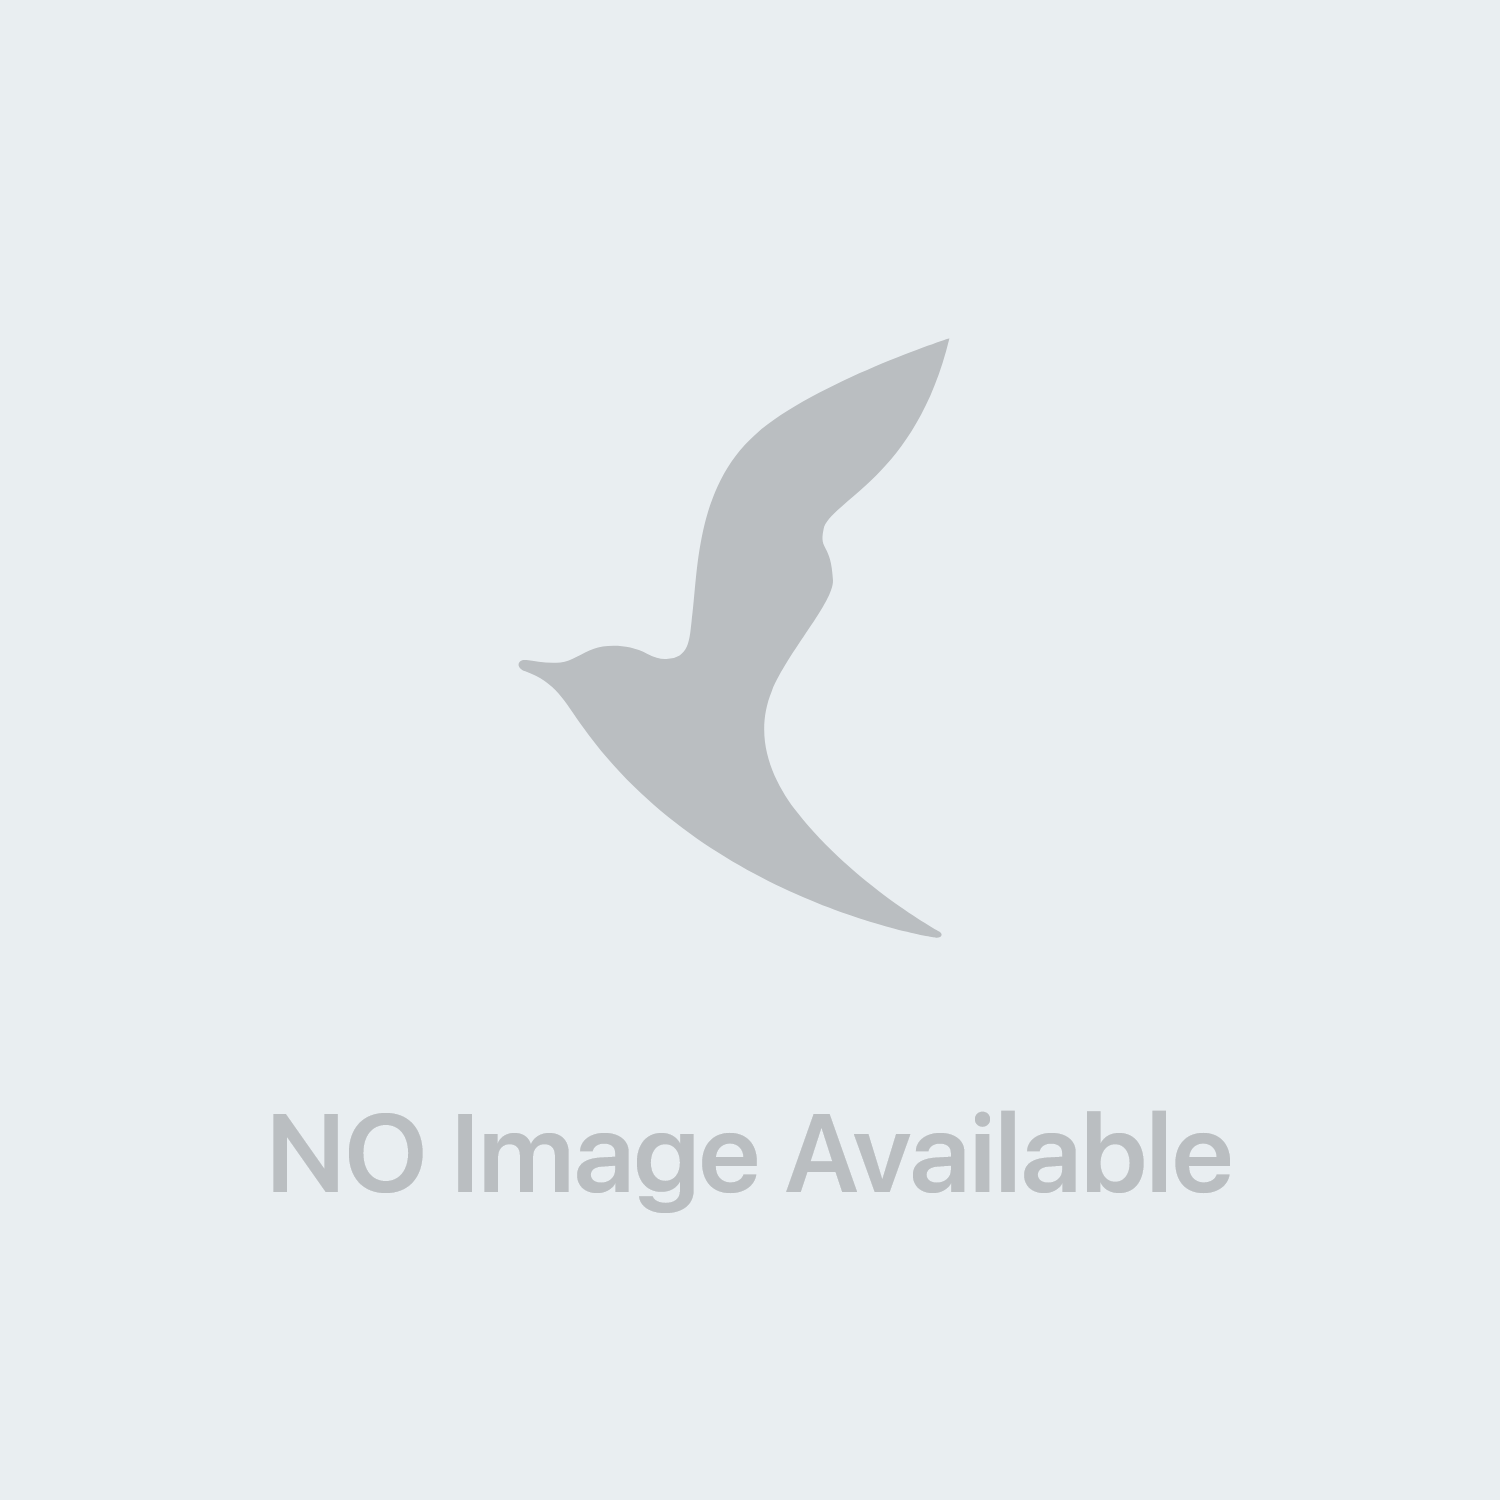 Dukan Condimento Per Insalate Light all'Aceto Balsamico di Modena 5% Grassi 500 ml